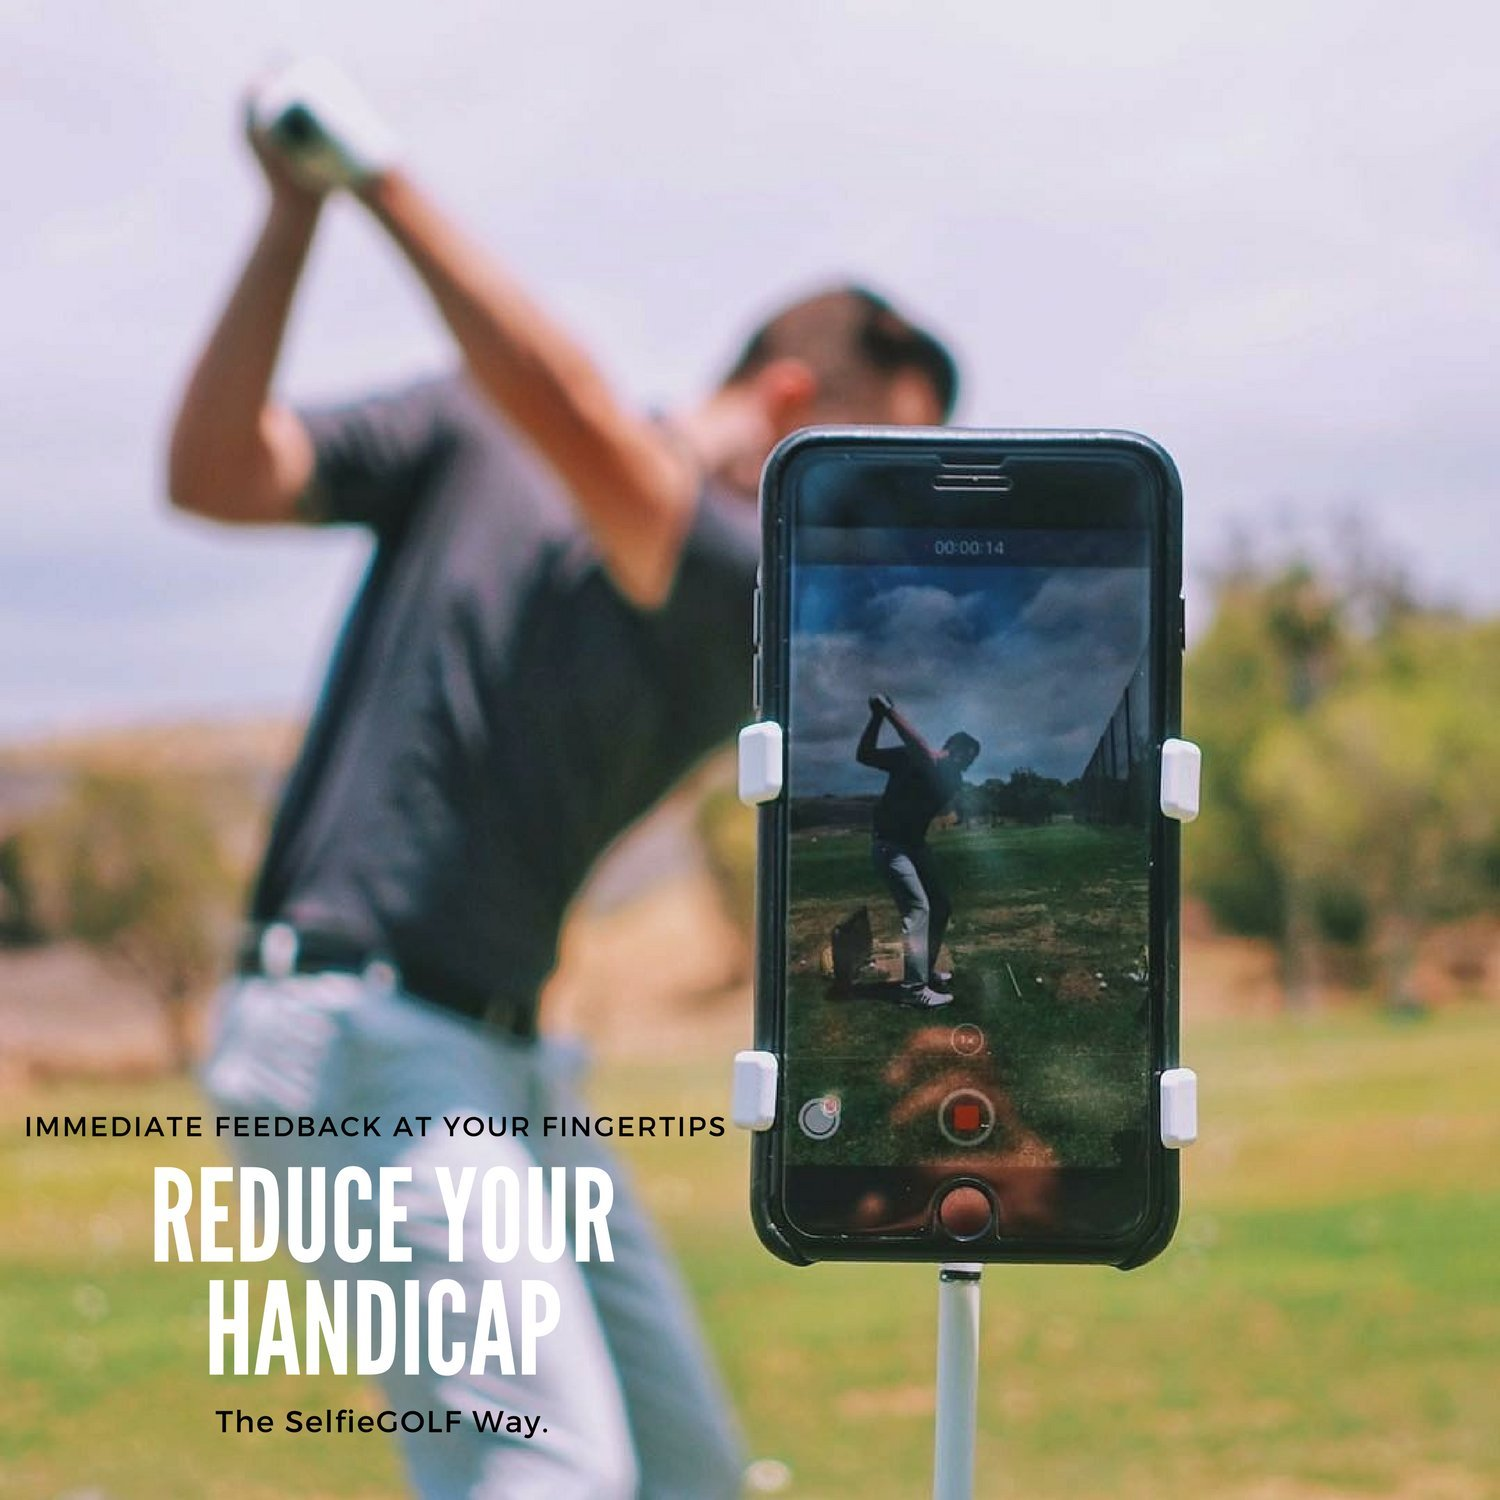 SelfieGolf Record Golf Swing - Cell Phone Clip Holder and Training Aid by TM - Golf Accessories | The Winner of The PGA Best of 2017 | Compatible with Any Smart Phone (Red/White) by Selfie Golf (Image #7)